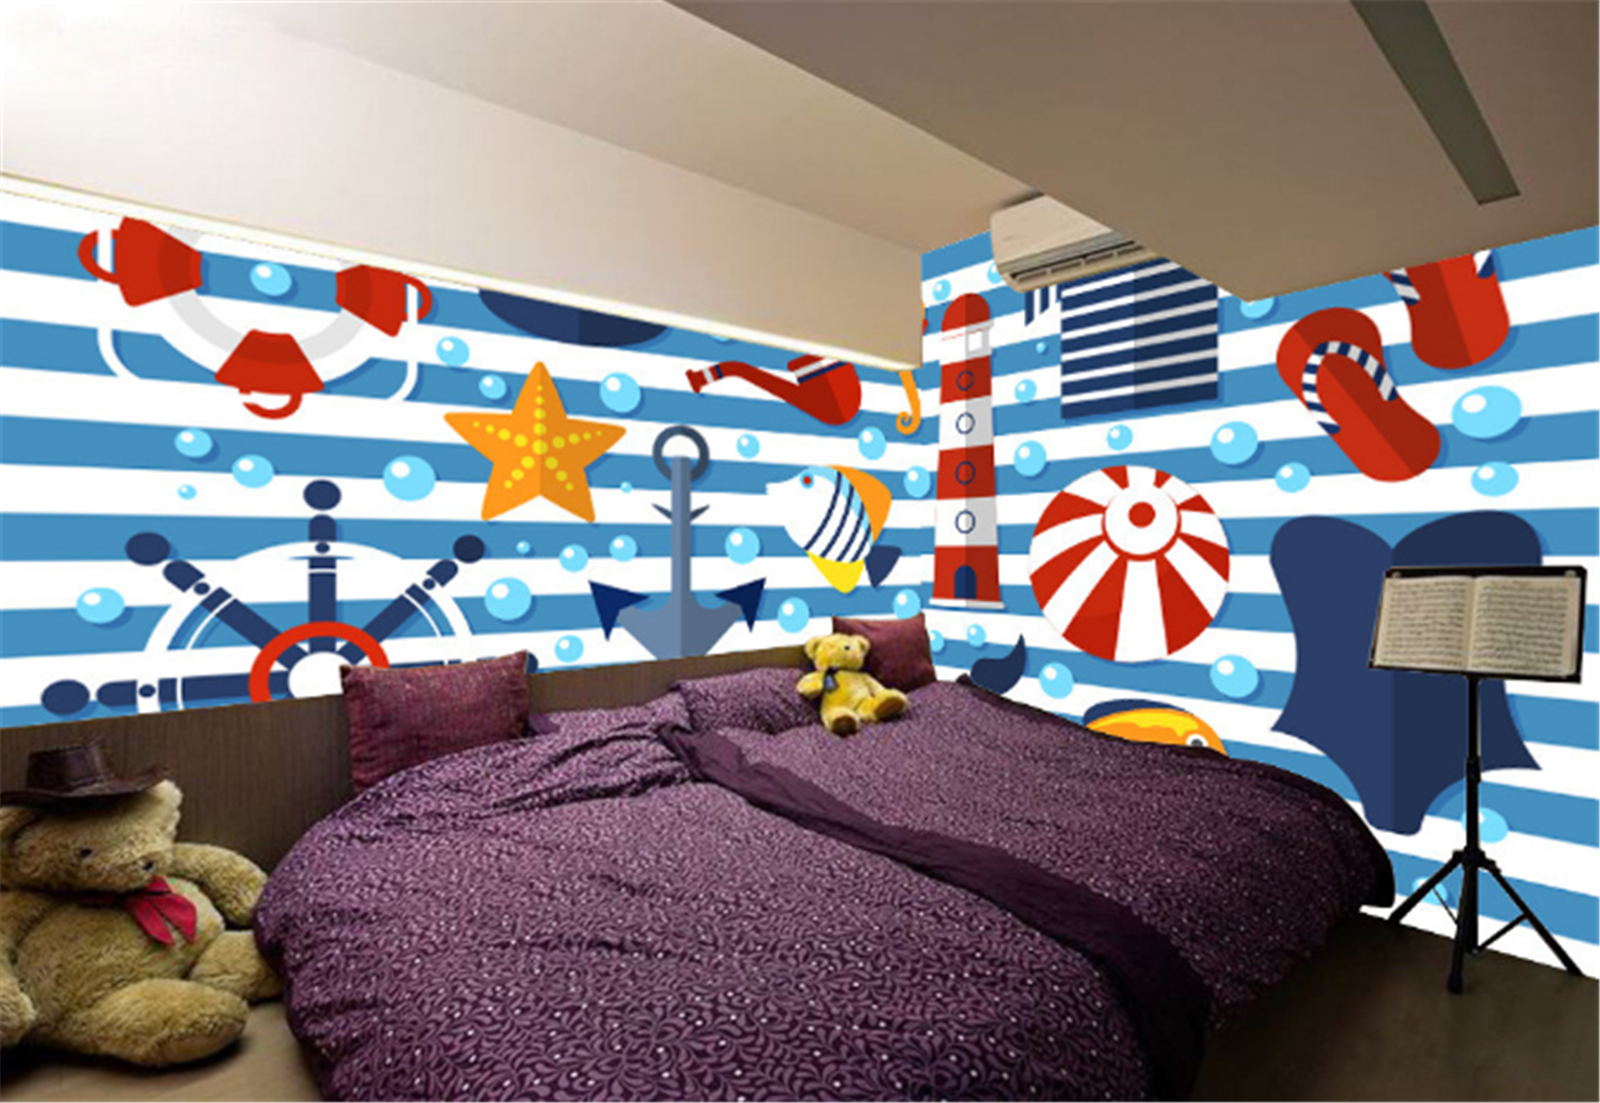 3D Sailing Sign 835 Wallpaper Mural Paper Wall Print Wallpaper Murals UK Kyra